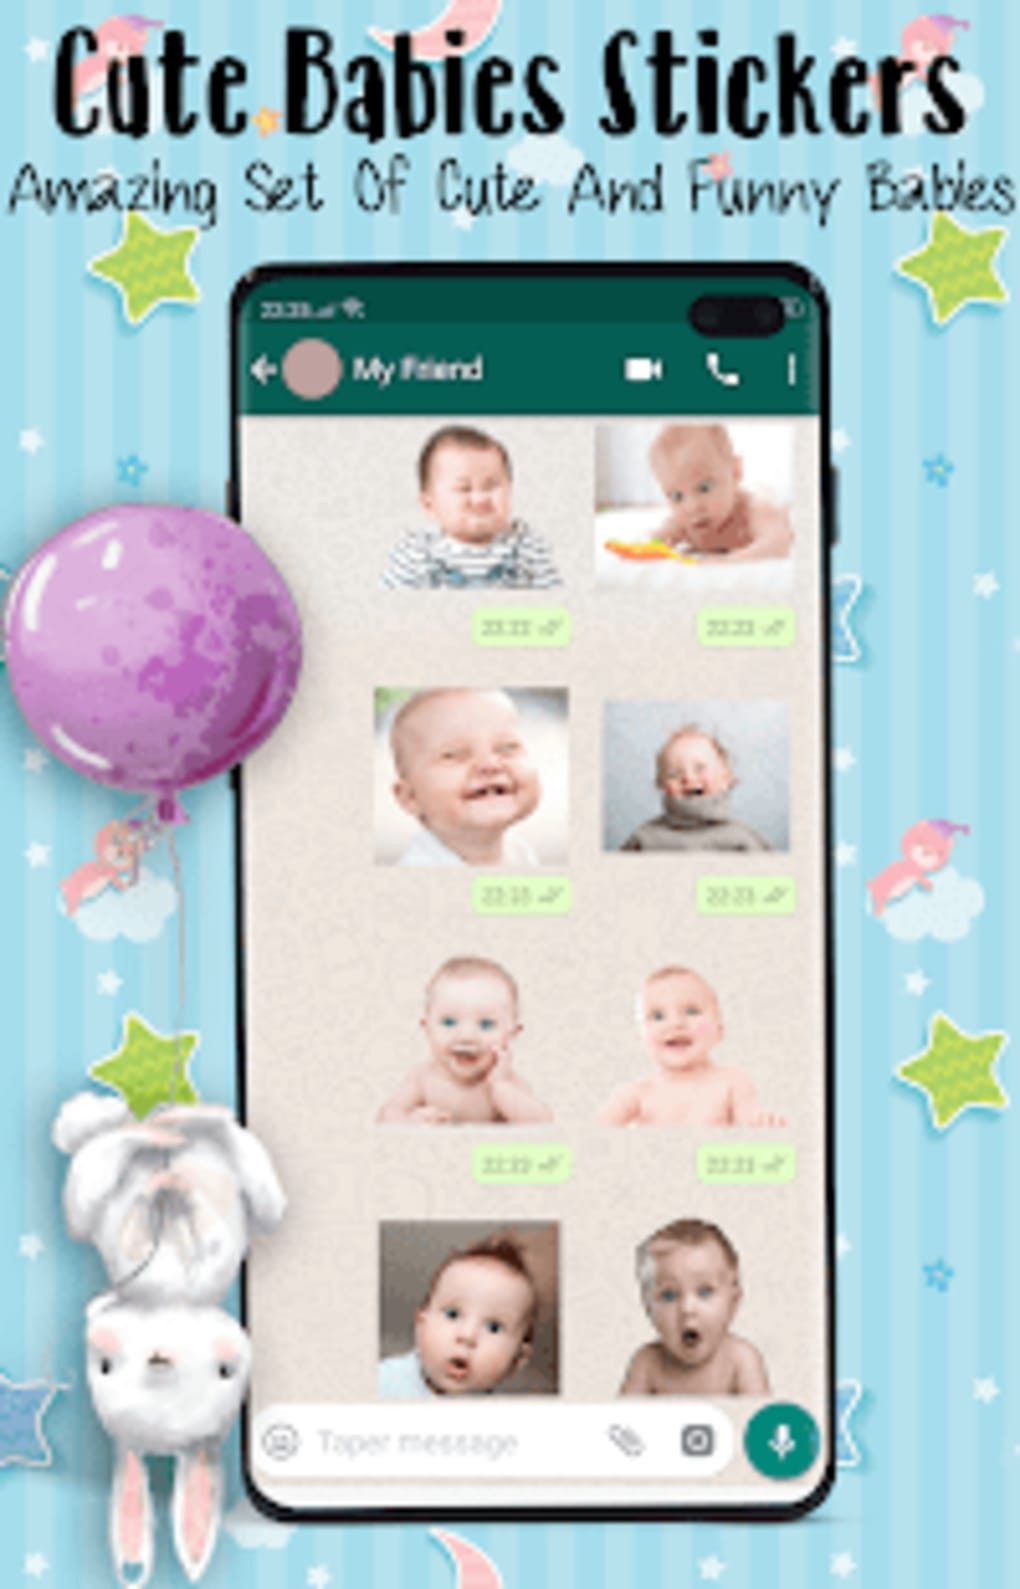 Babies Stickers For Whatsapp 2021 Apk For Android Download